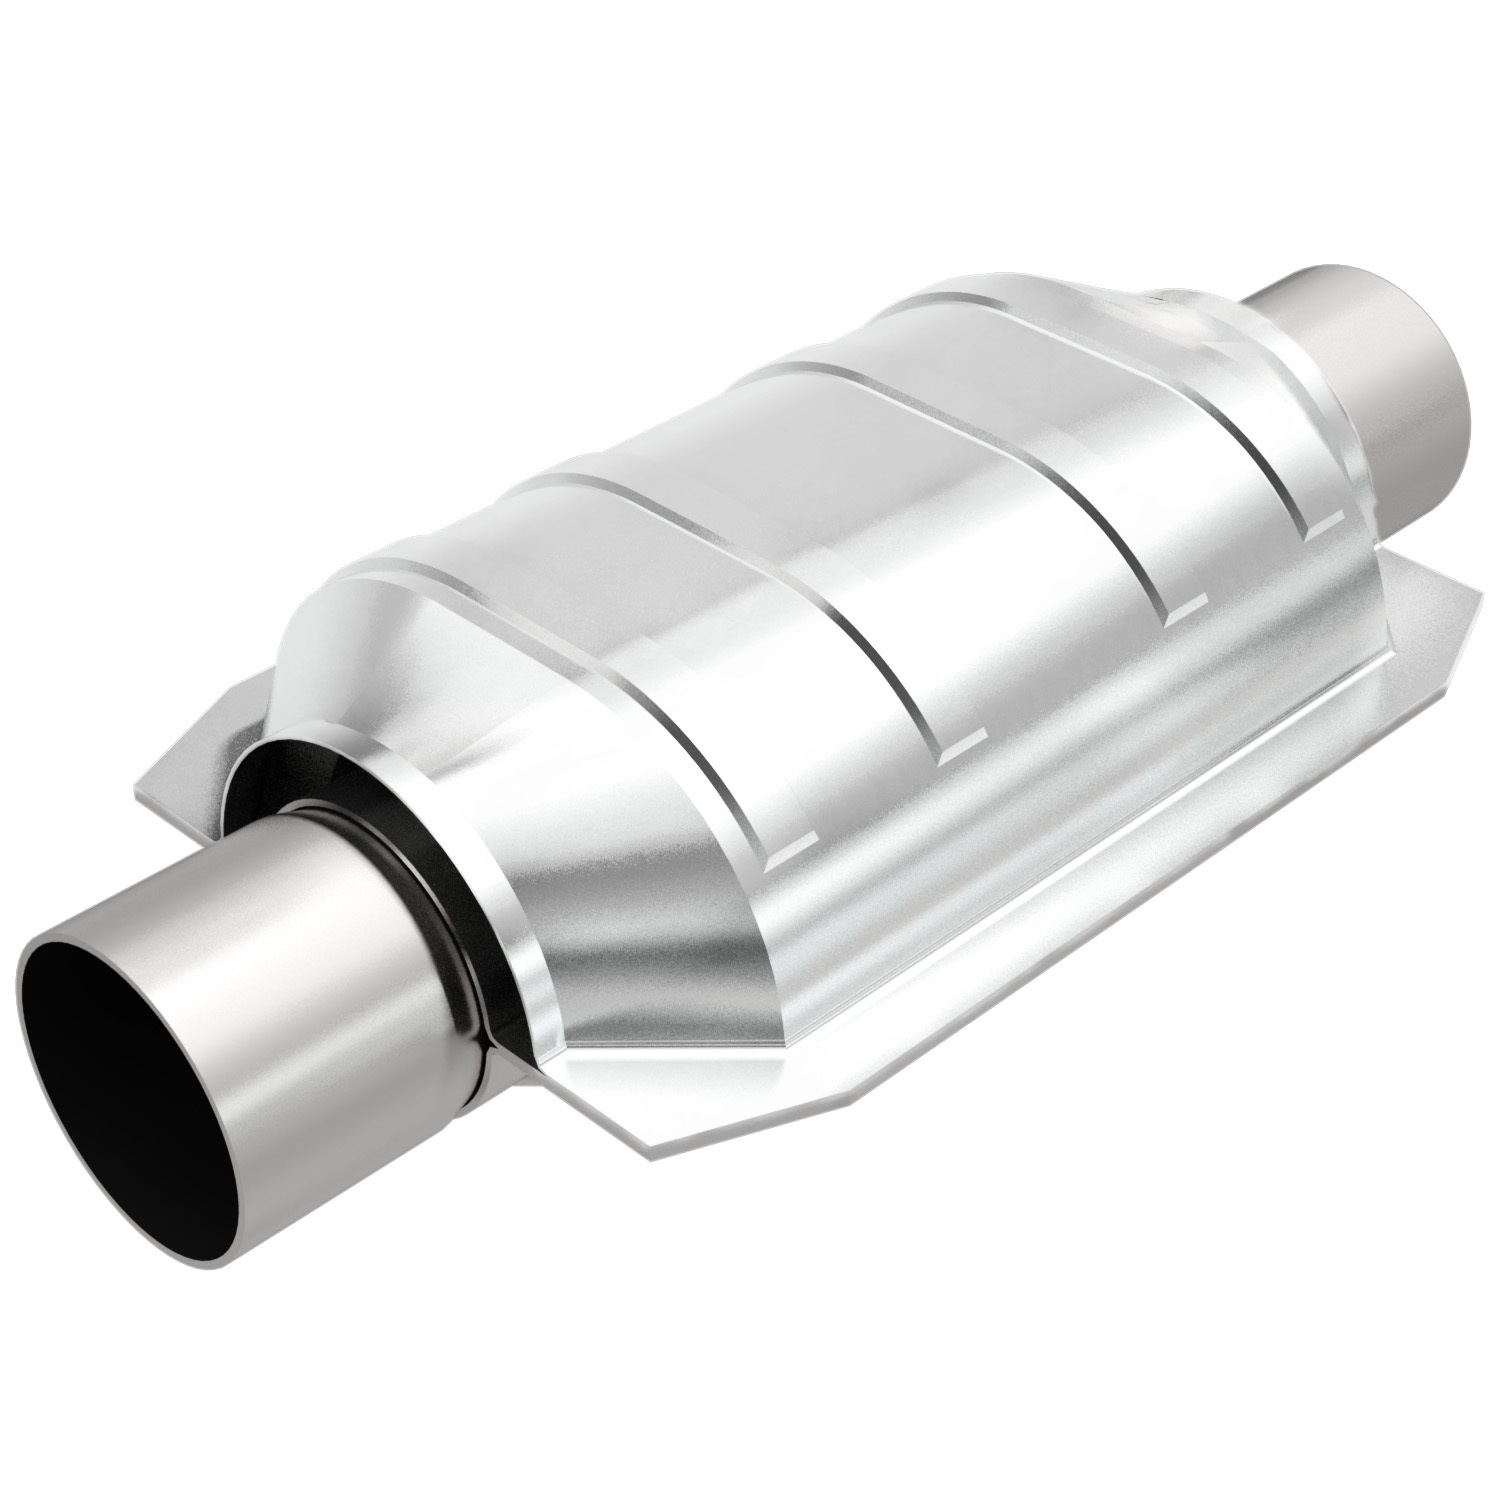 MagnaFlow Exhaust Products Catalytic Converter (33105)